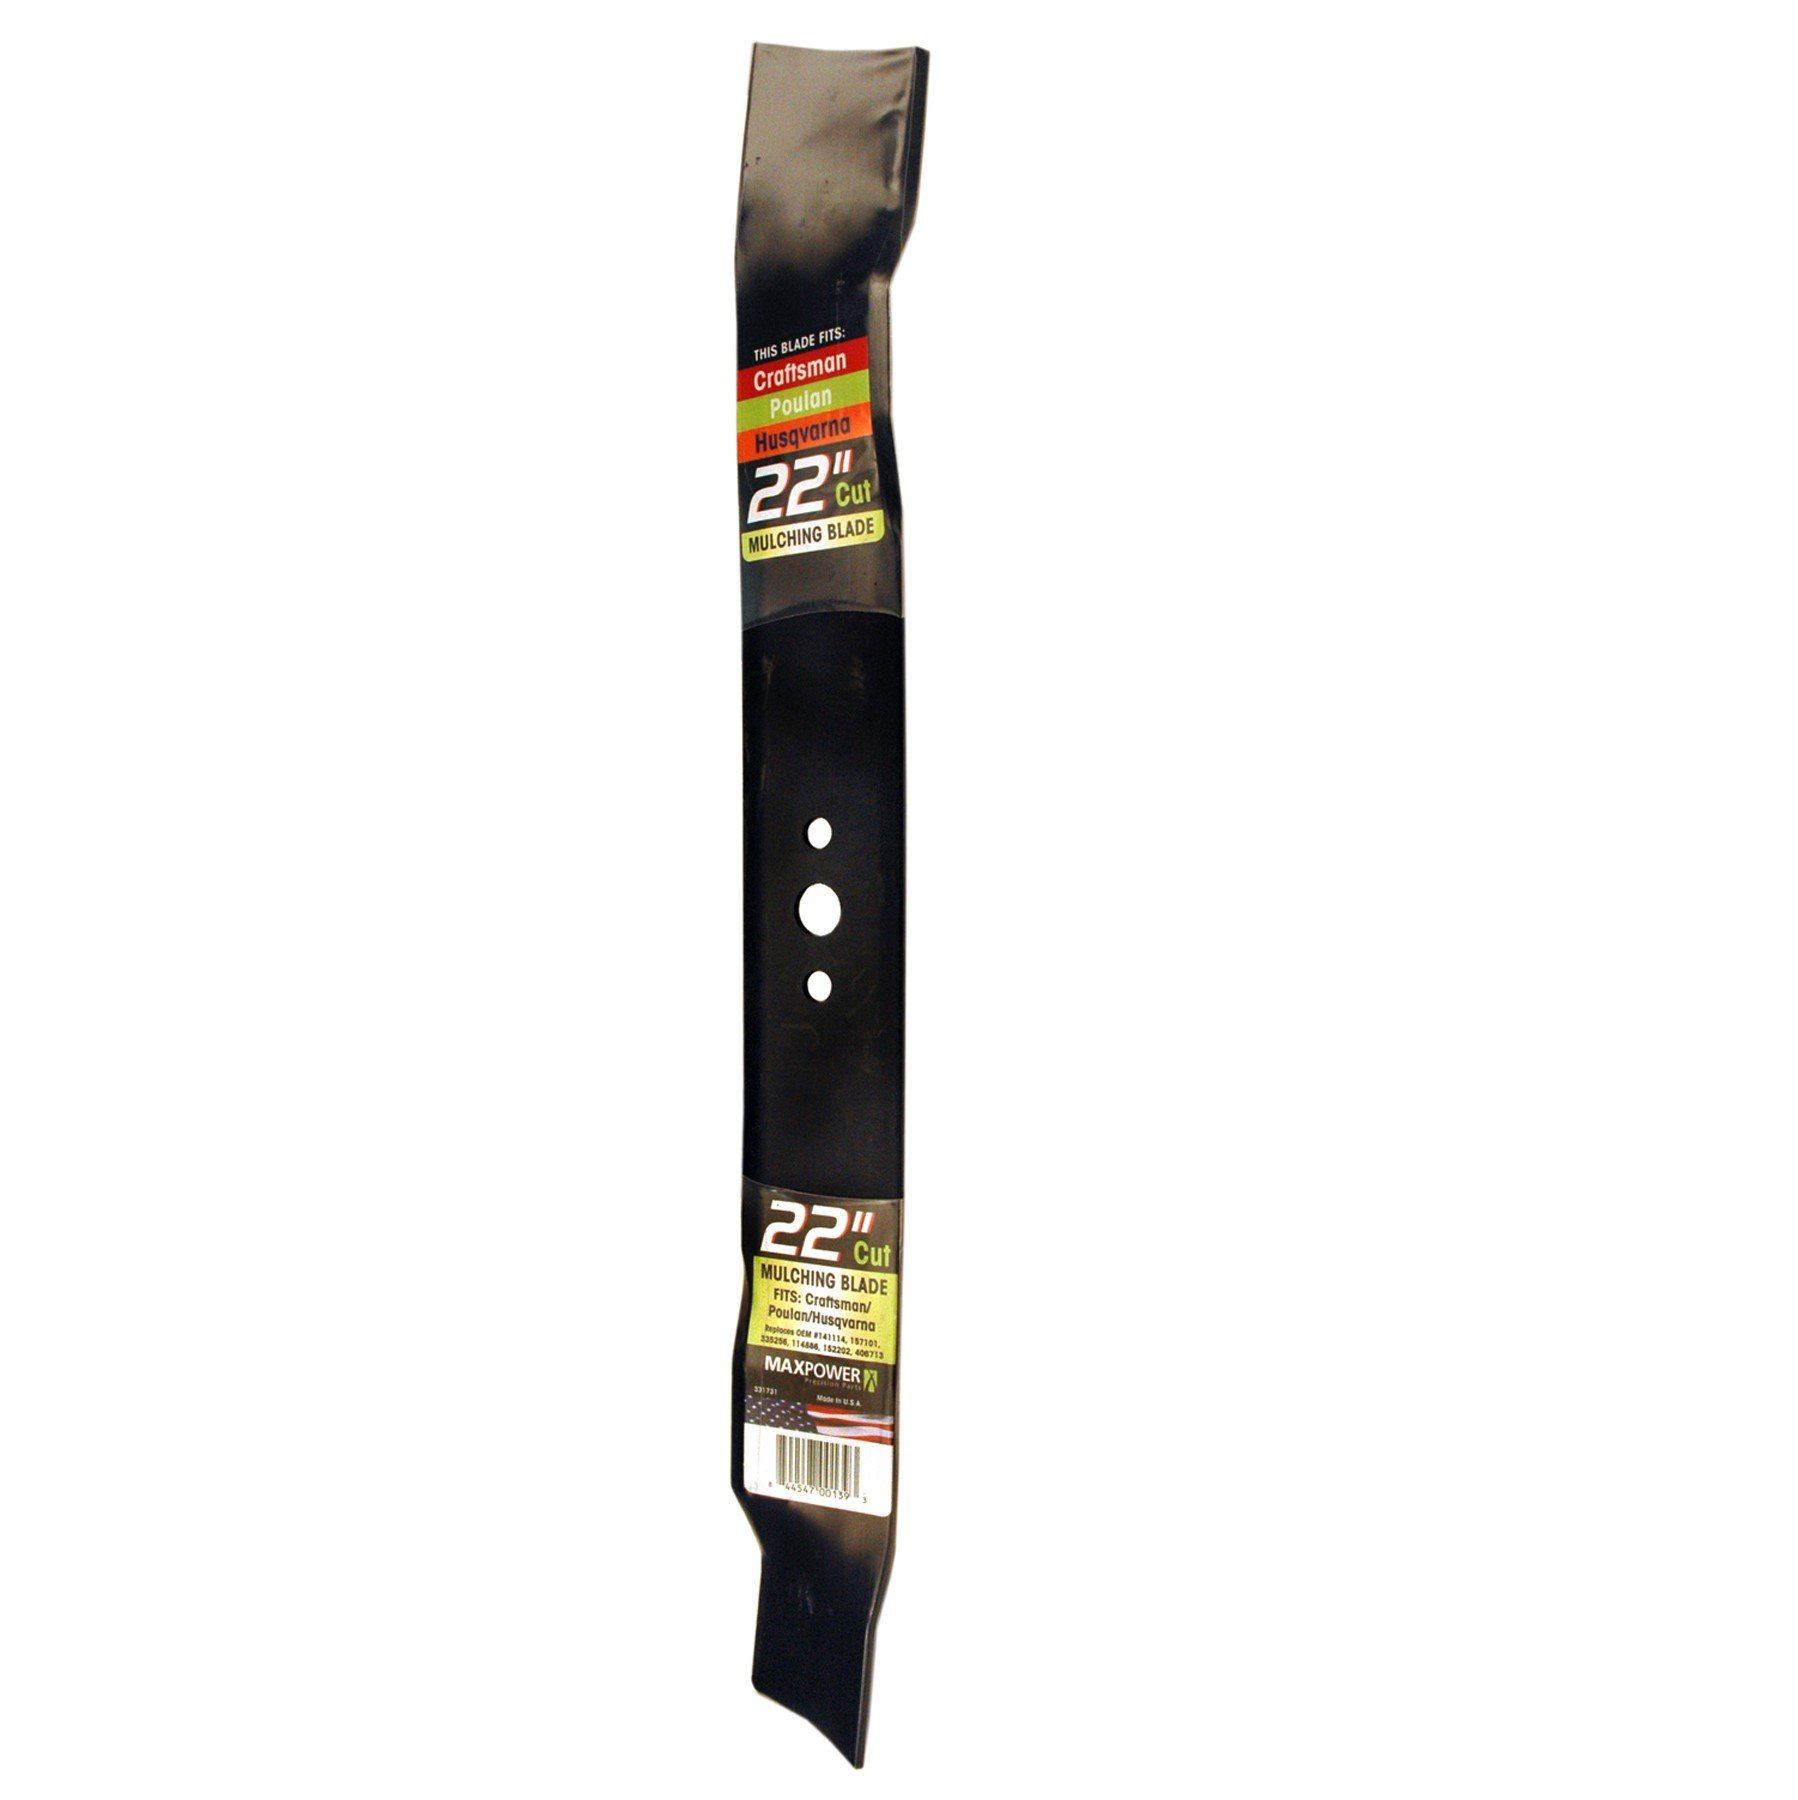 Maxpower 331731S Mulching Blade for 22 Inch Cut Poulan/Husqvarna/Craftsman Replaces 141114, 157101, 406713, 406713X431, 532141114, 532406713 by Maxpower